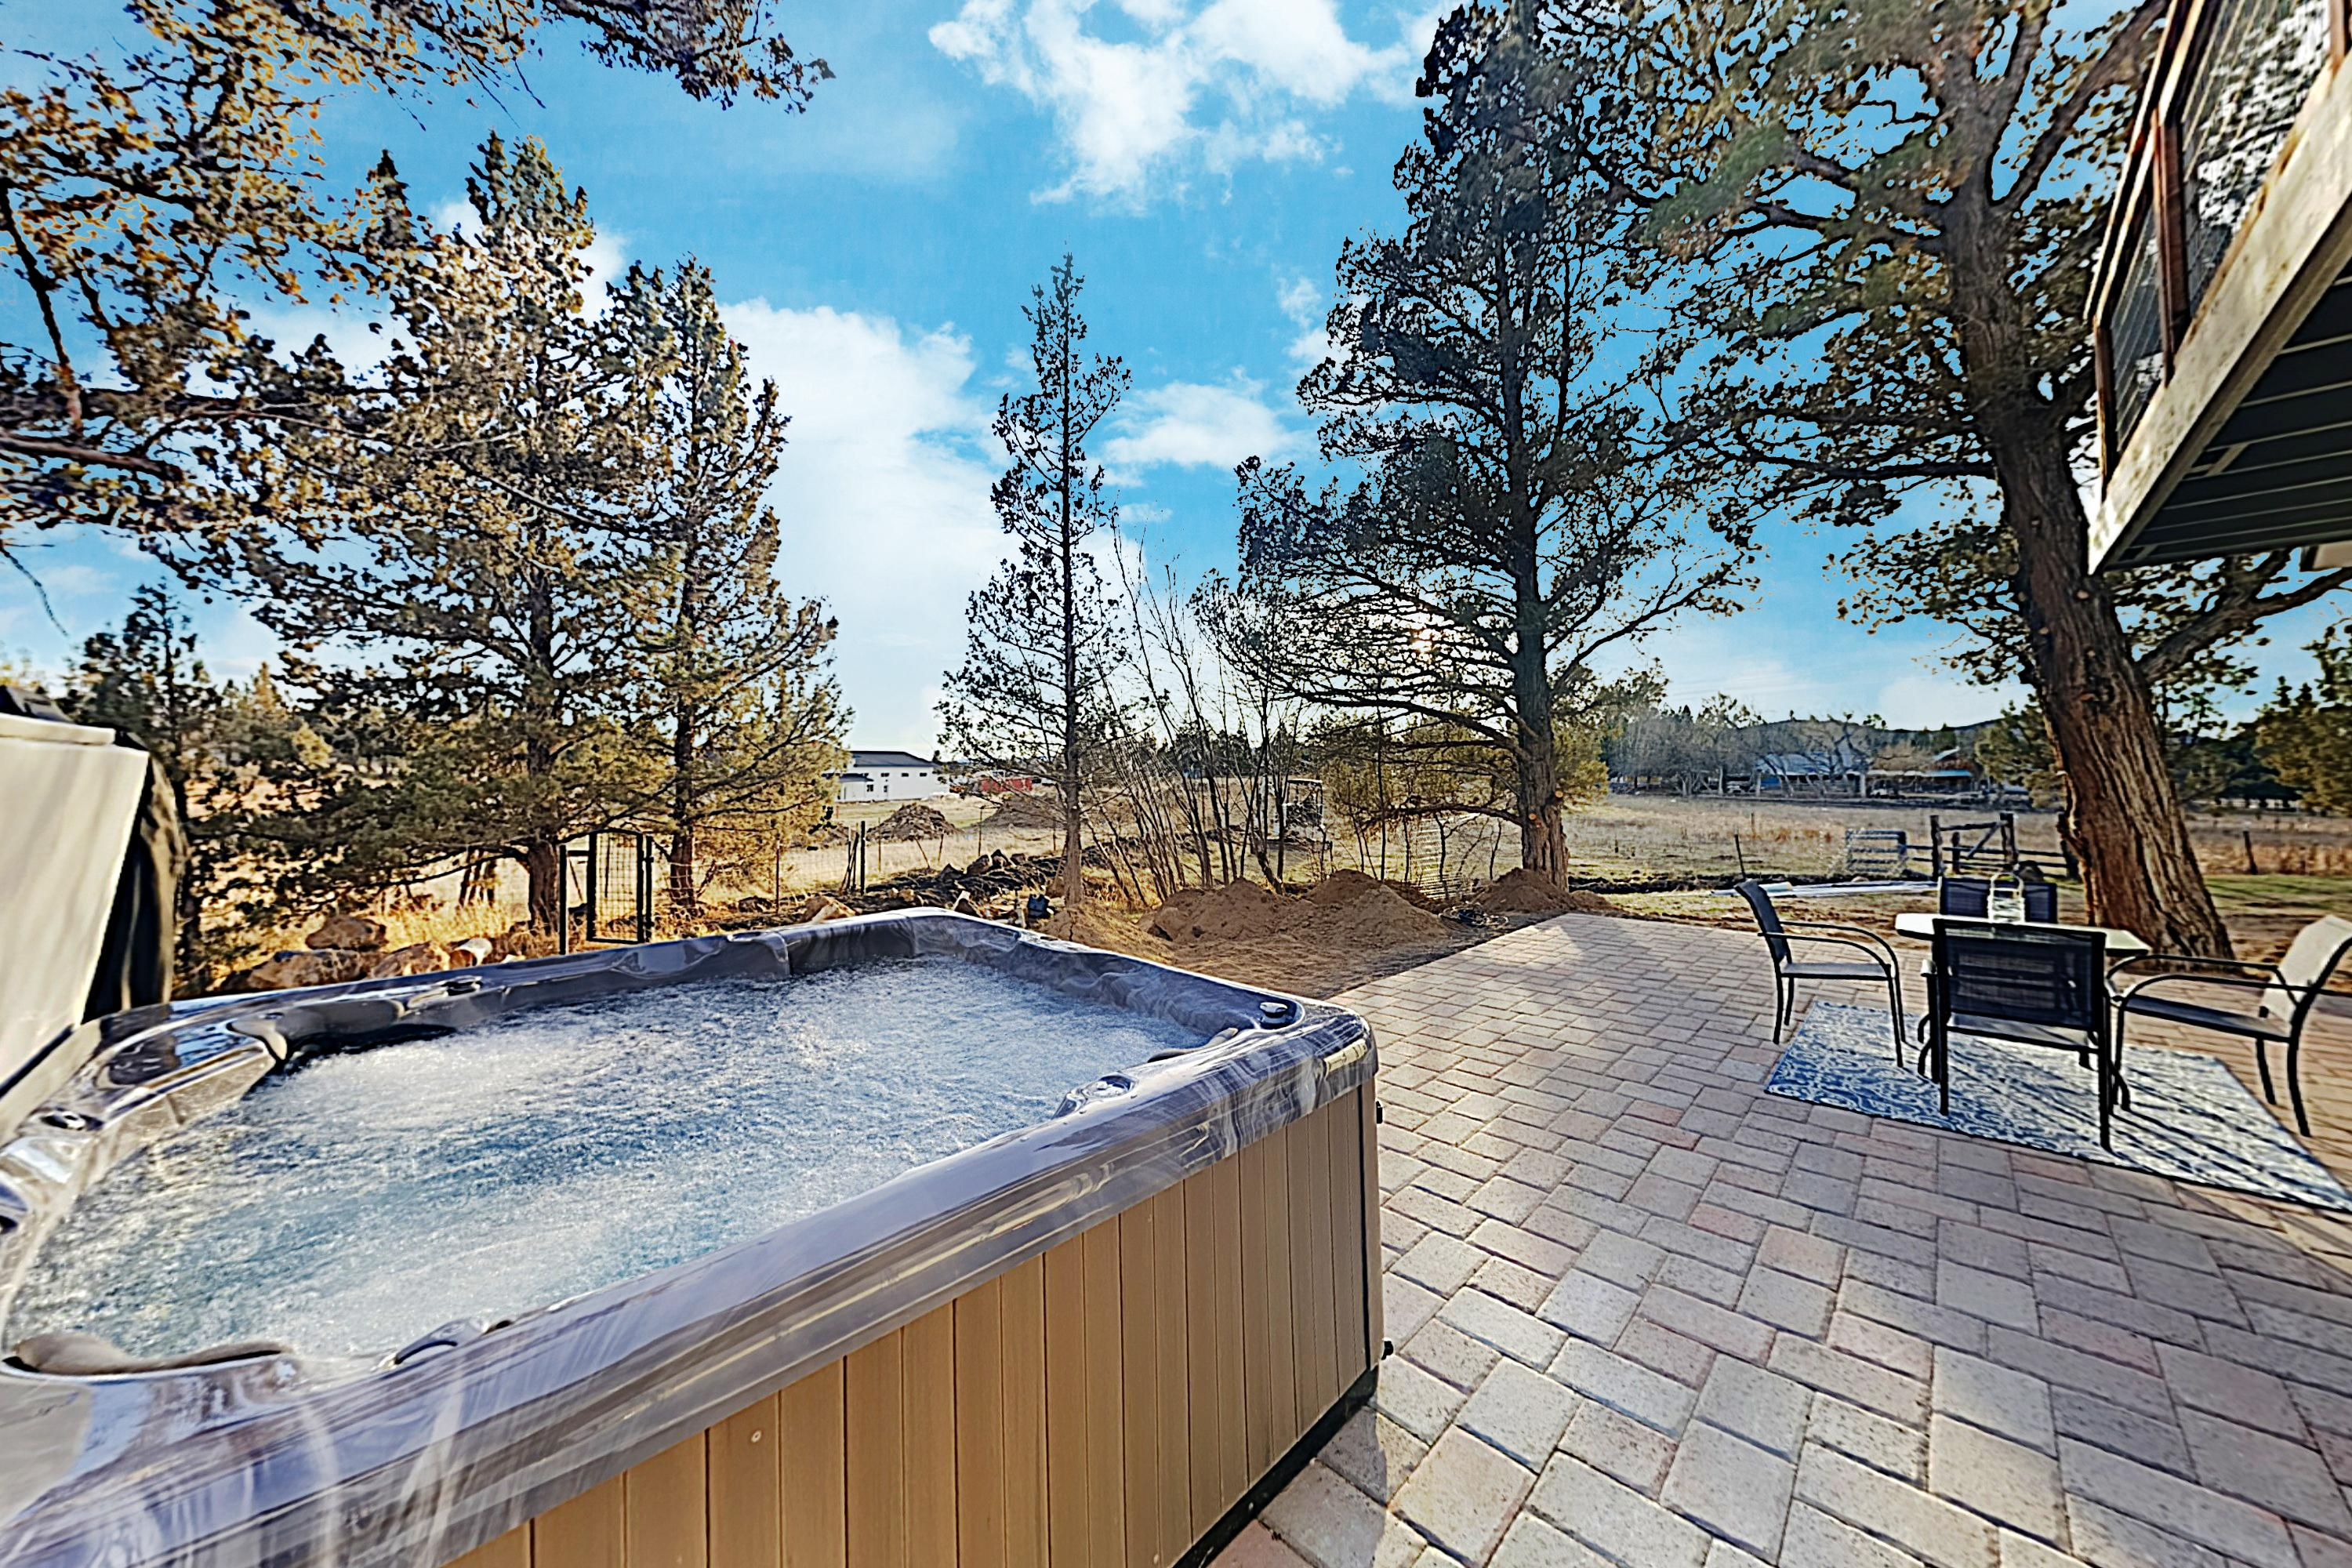 Grand, Secluded Home with Hot Tub and Fire Pit on Sprawling Lot